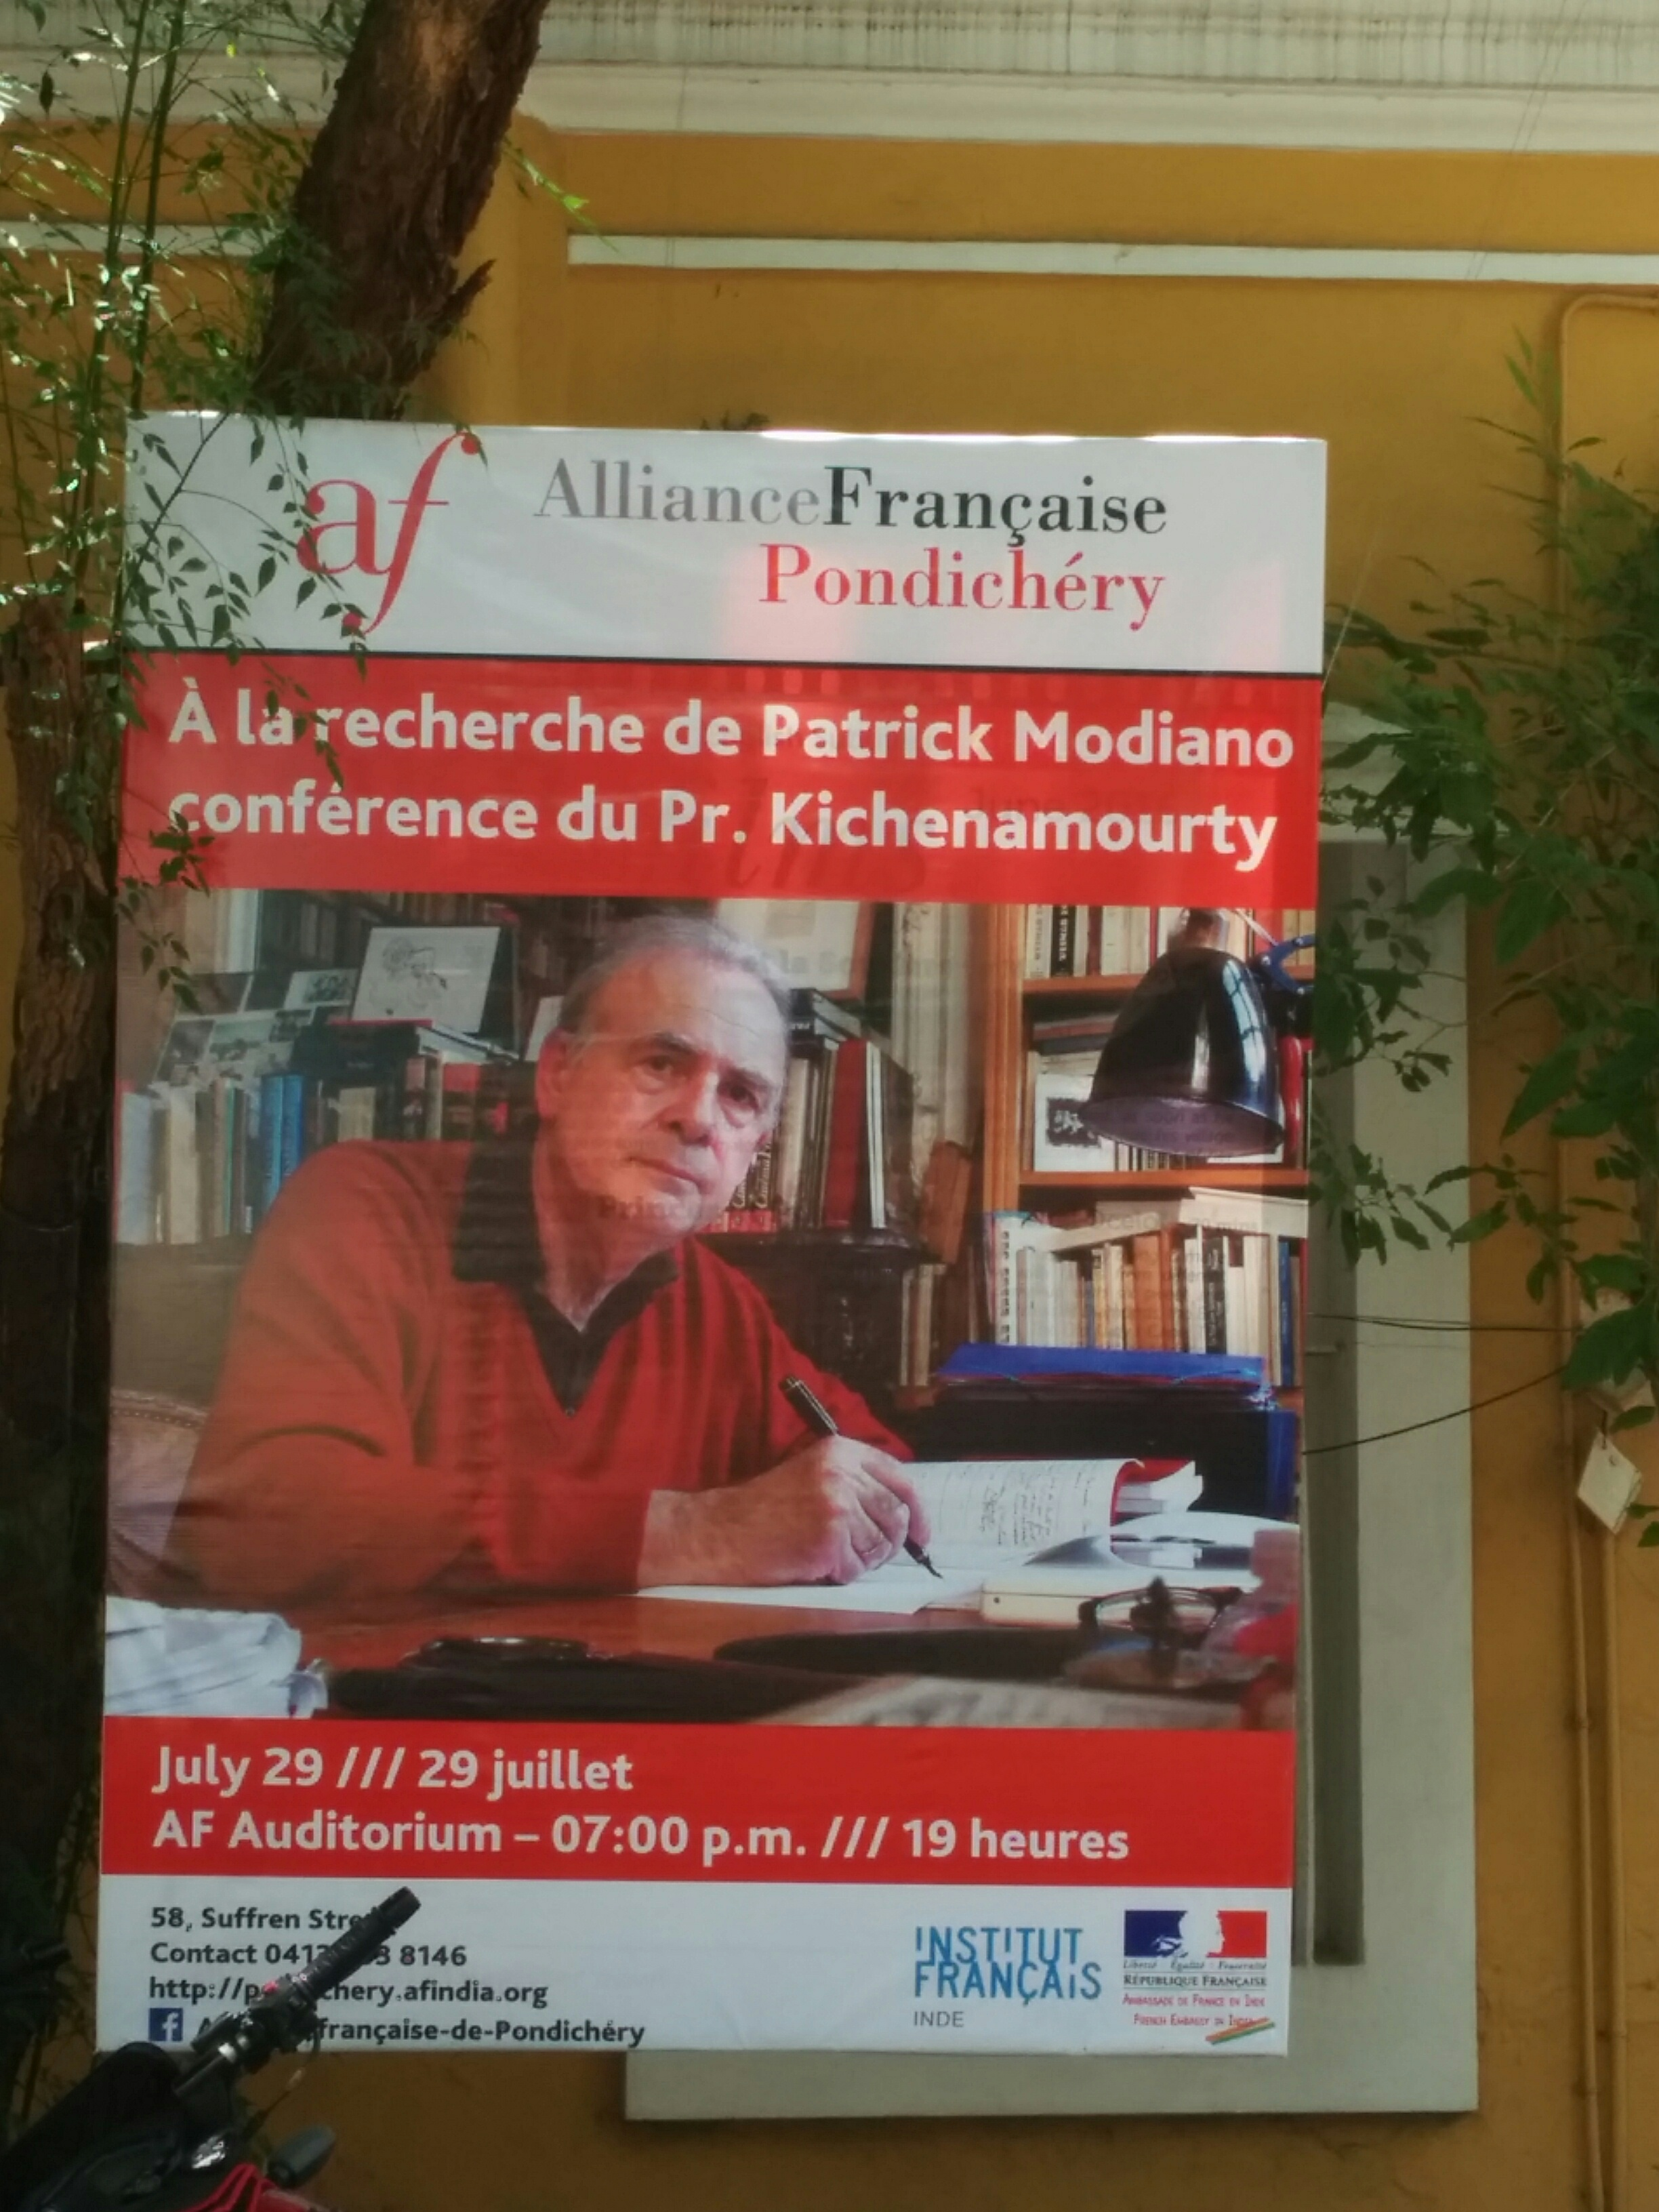 Alliance Française, Pondicherry